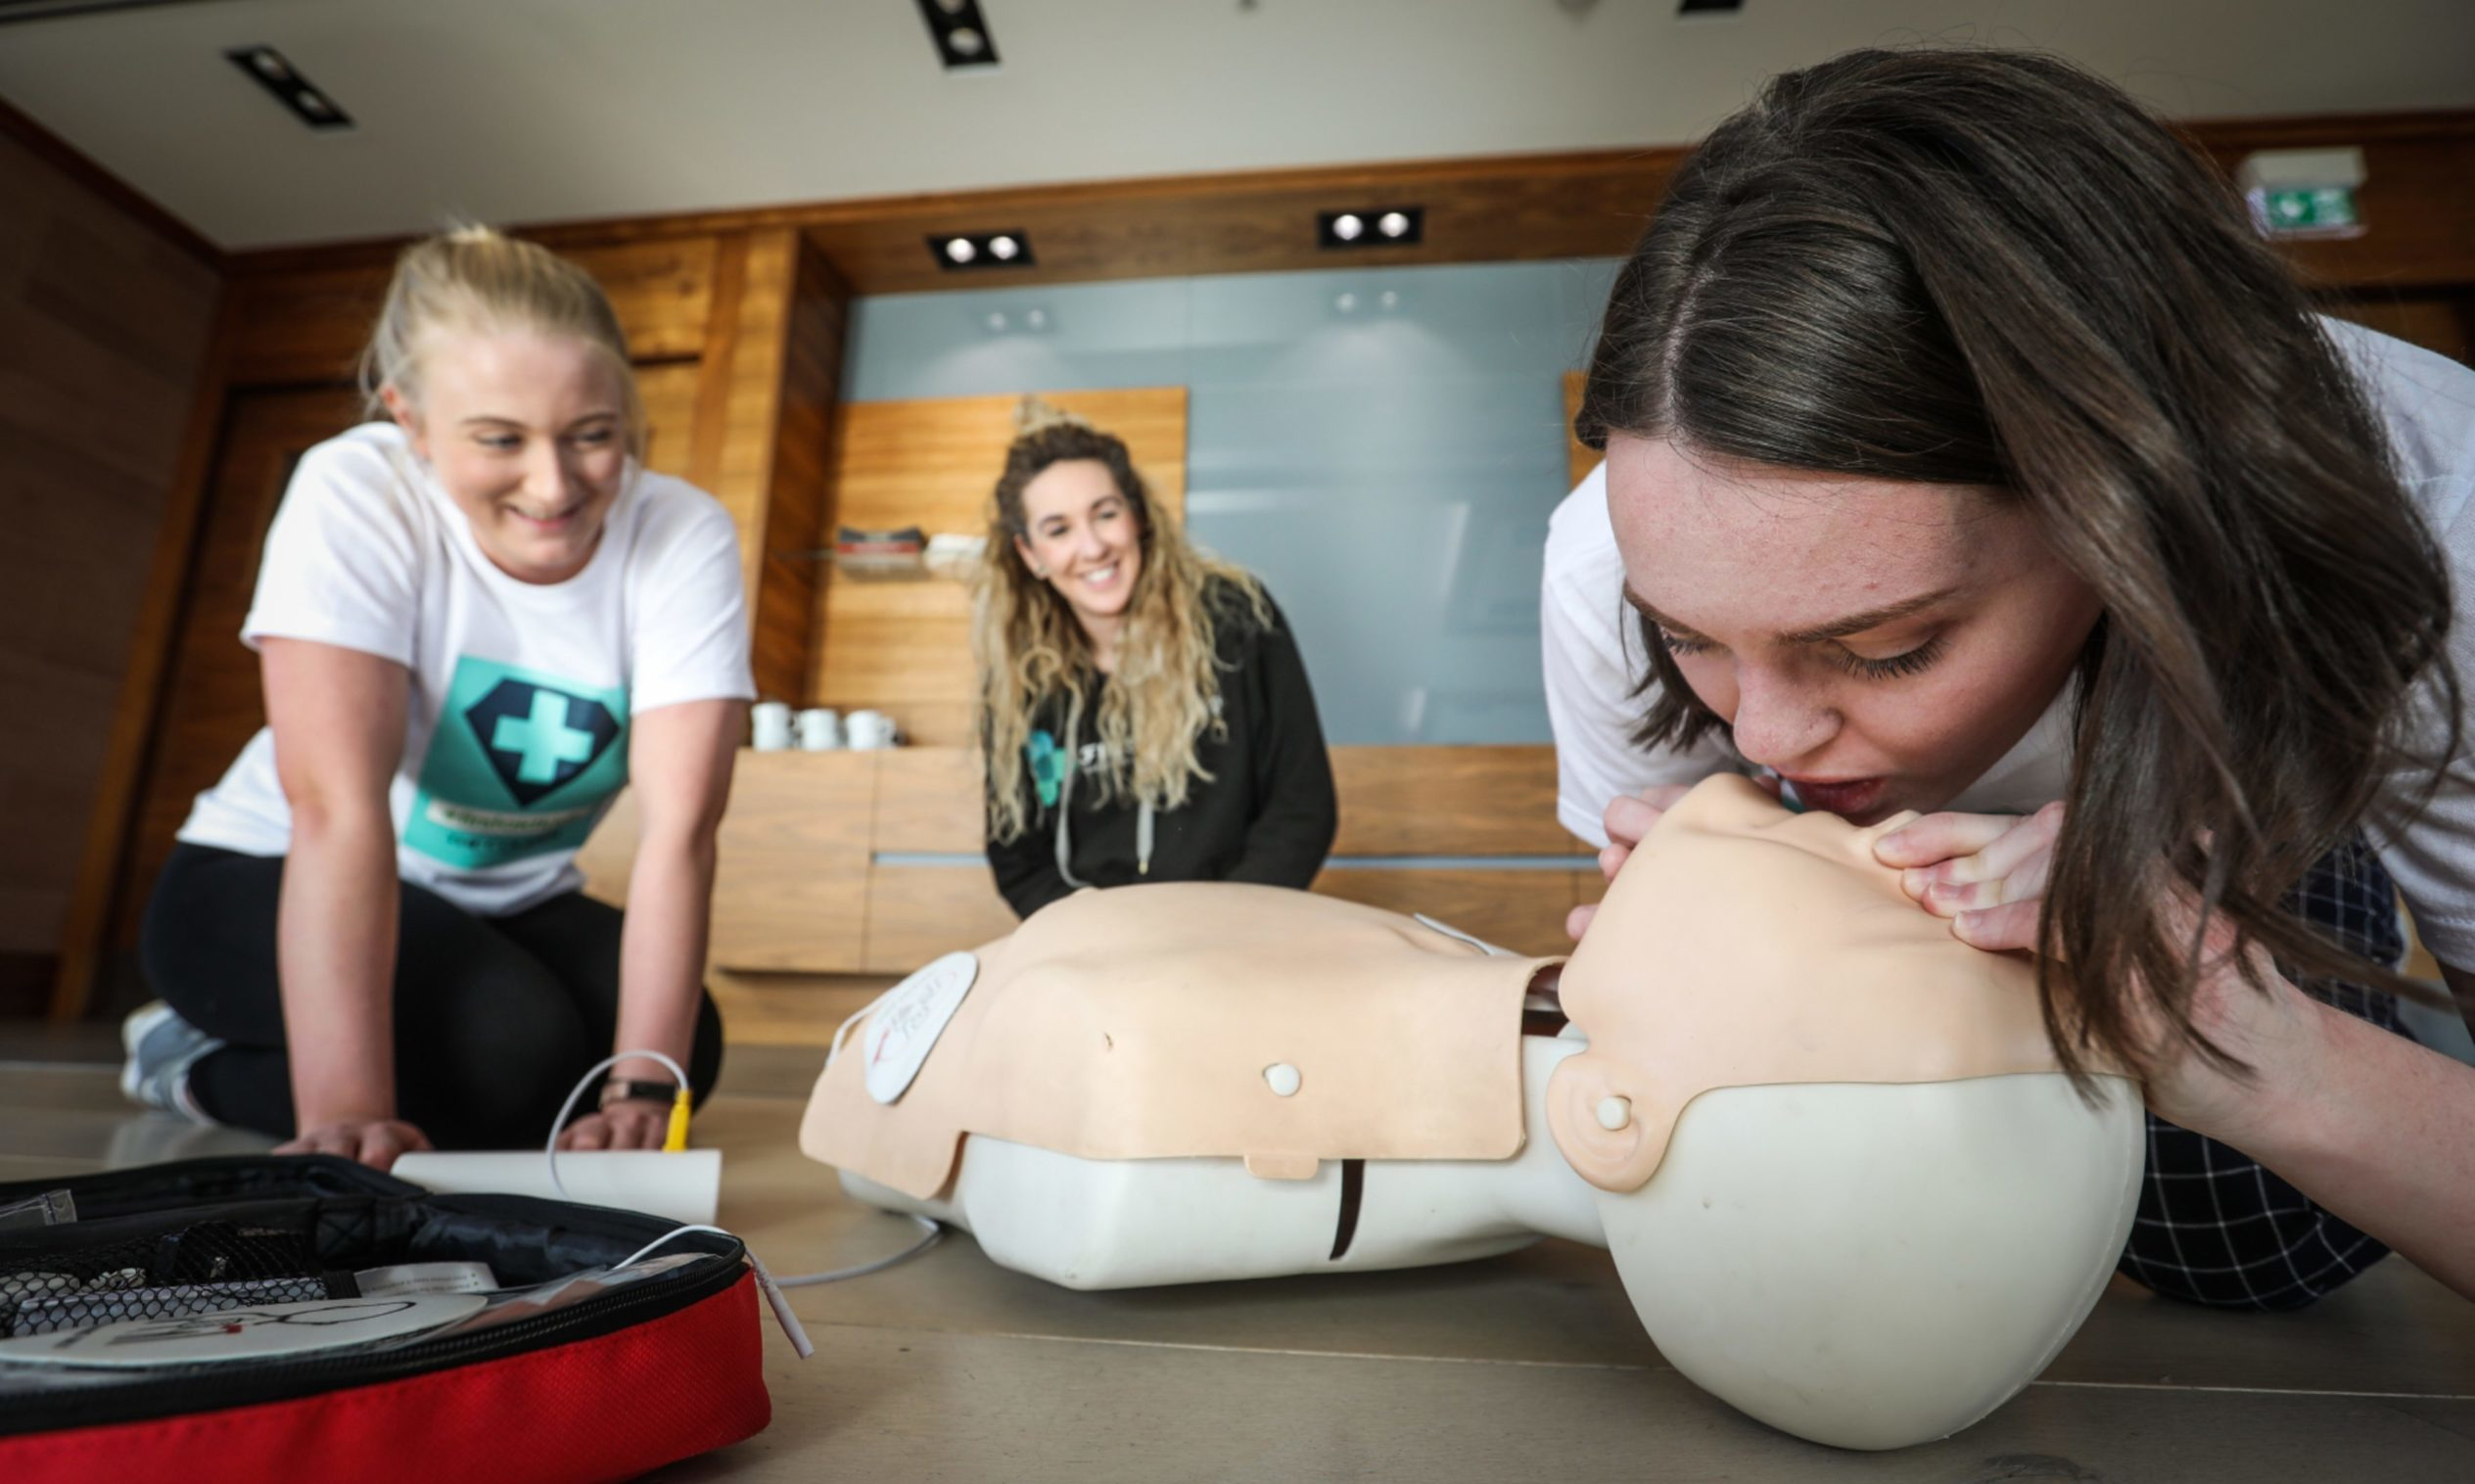 A CPR training course, teaching people what to do if someone is in cardiac arrest, takes place in 2020.